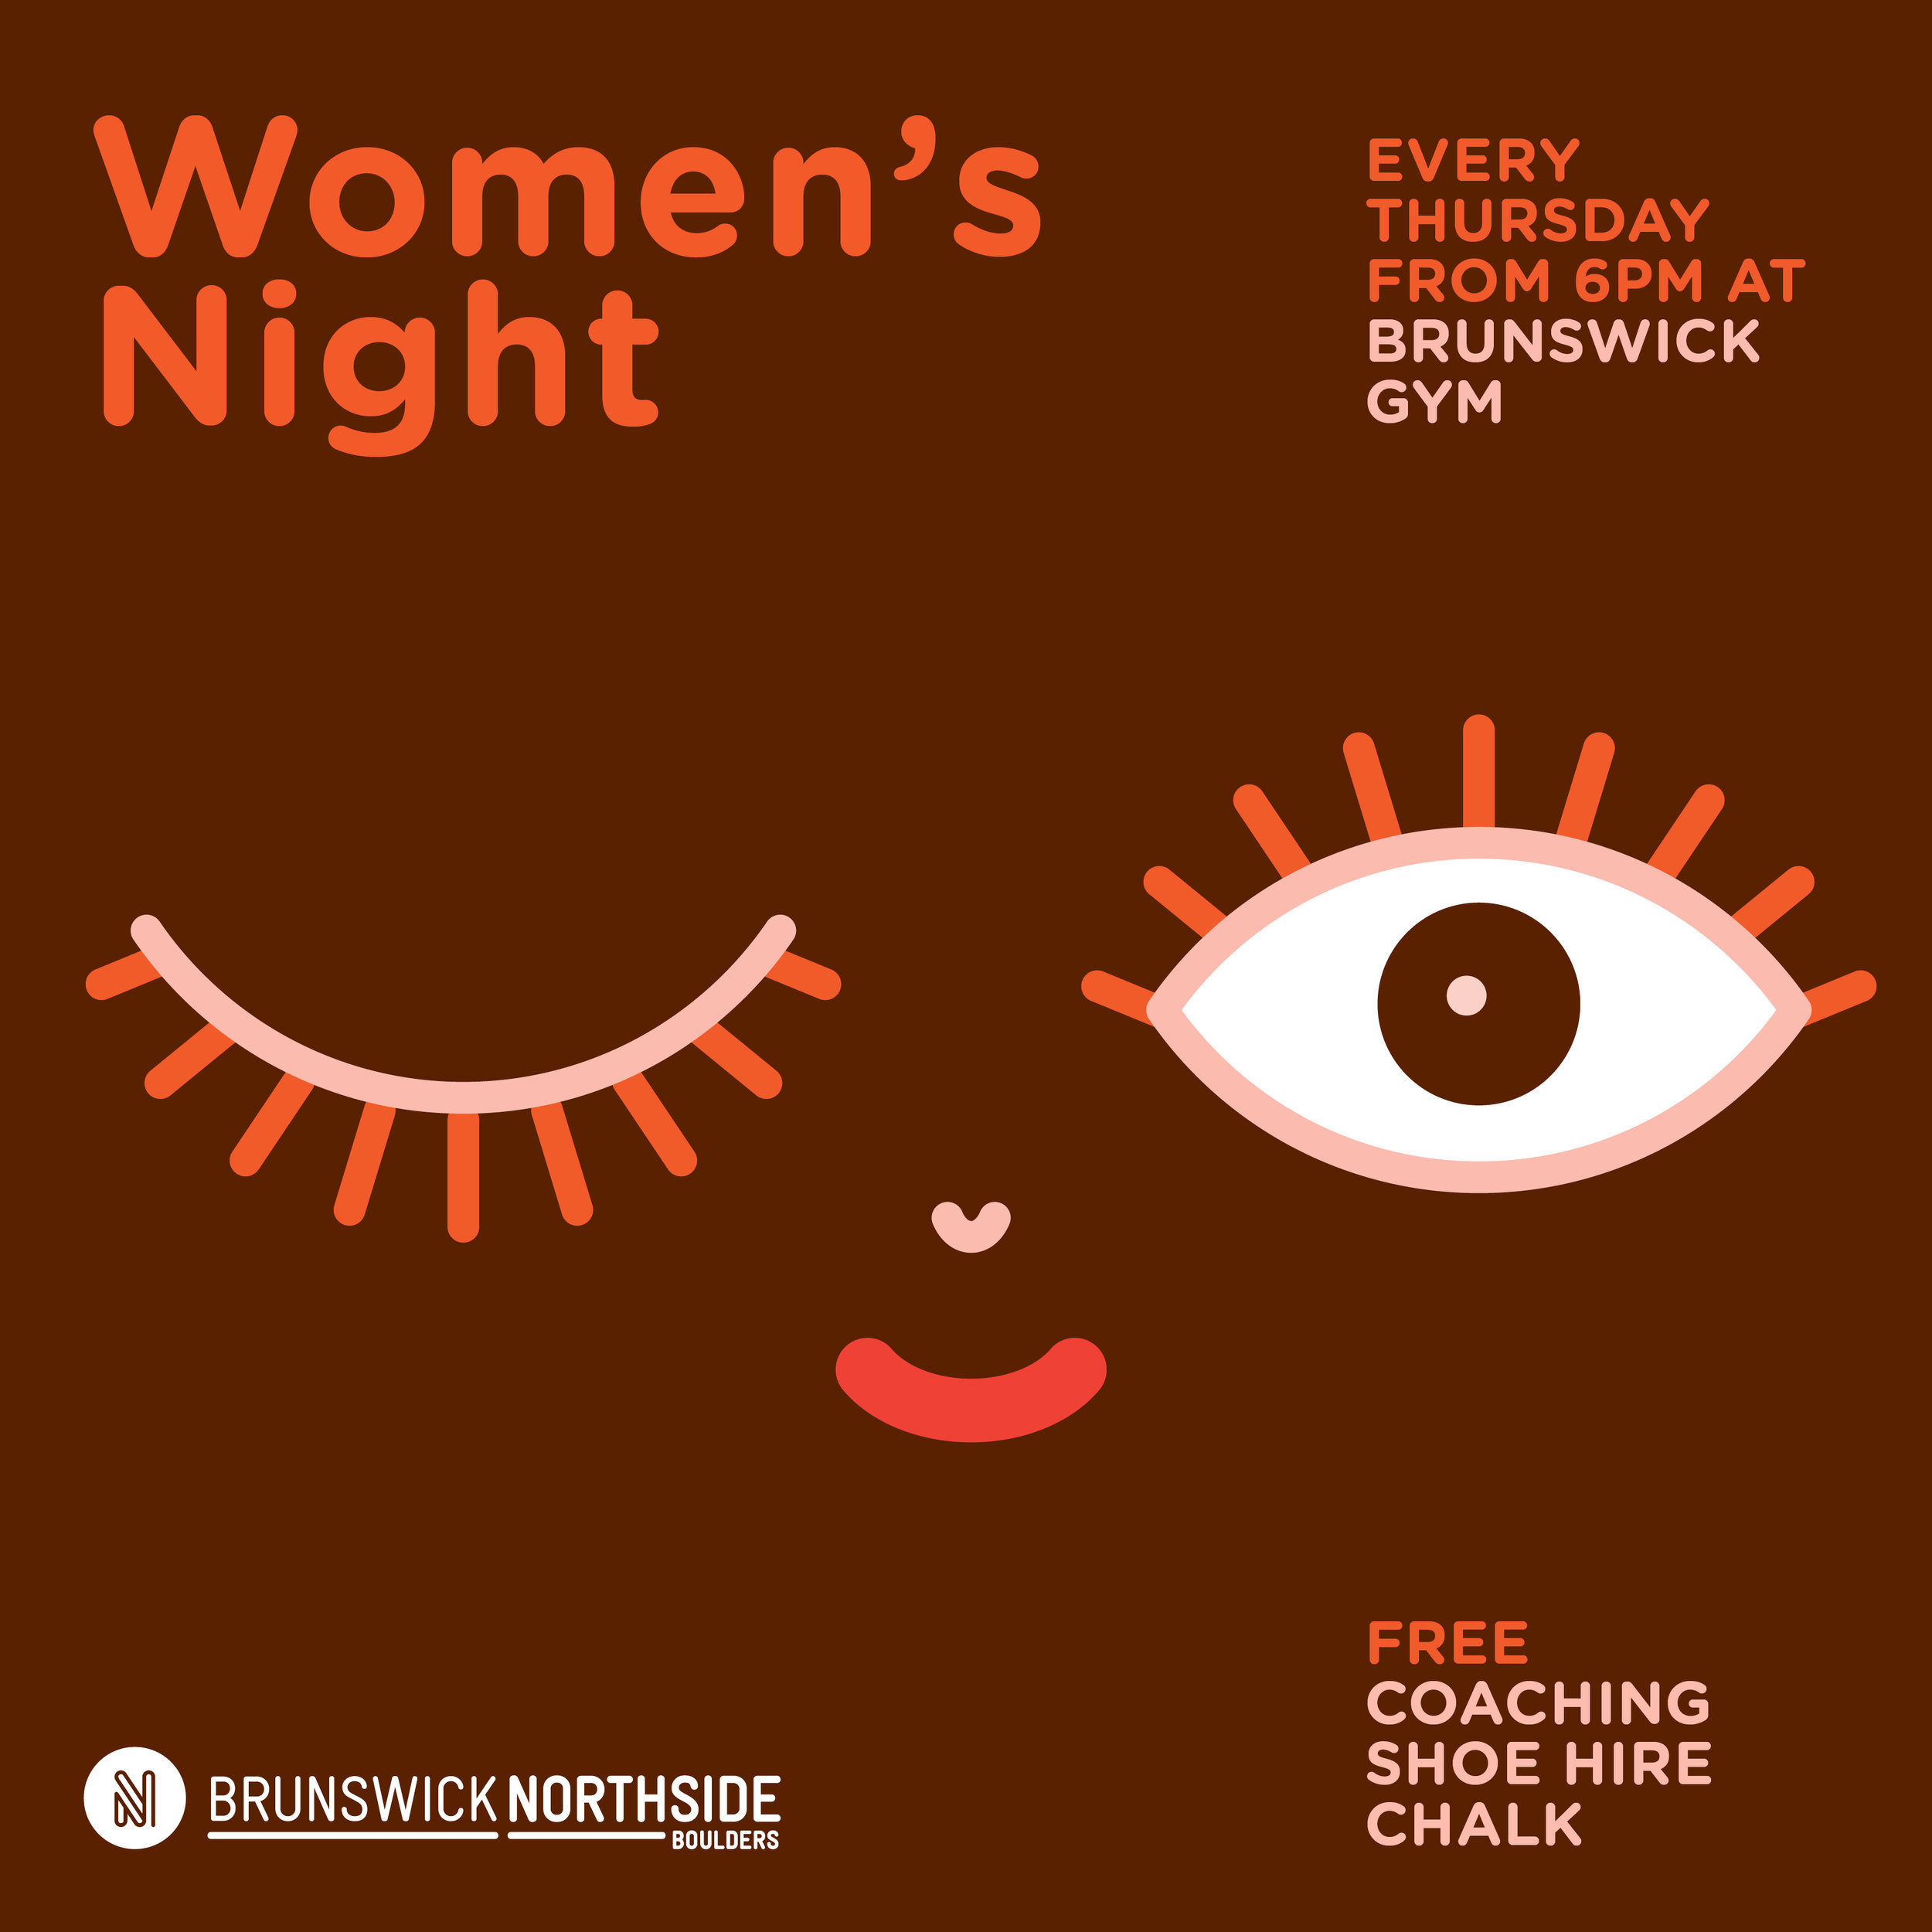 NS LF WomensNight20192.jpg